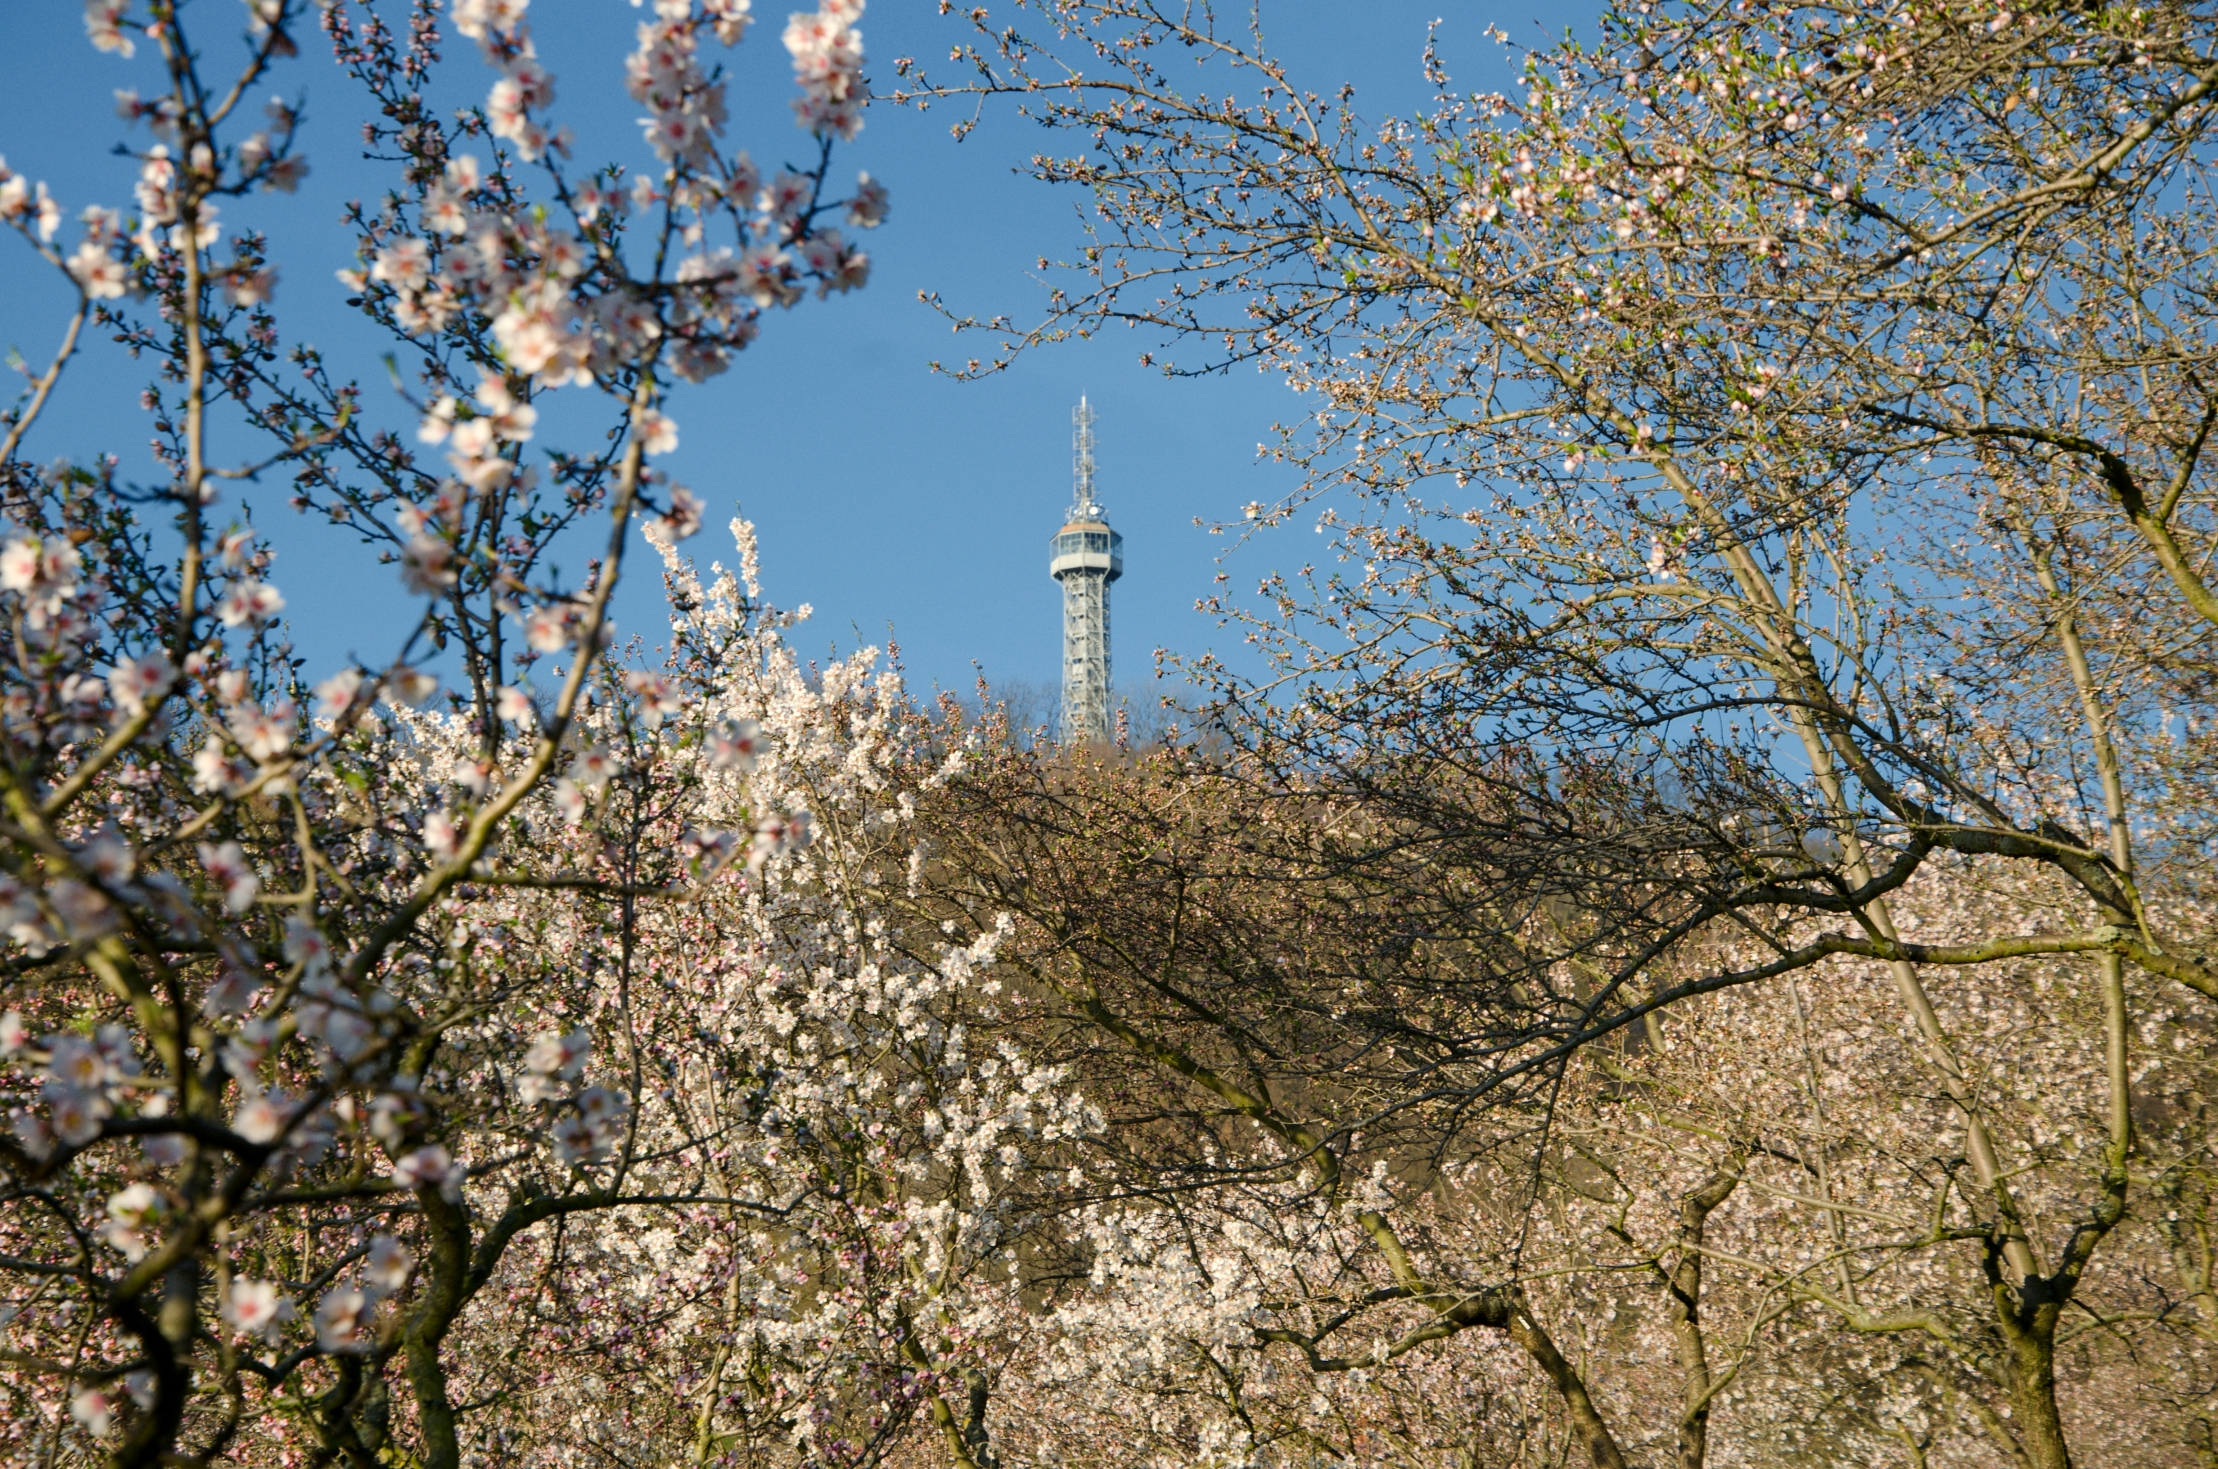 The Petrin Observation Tower